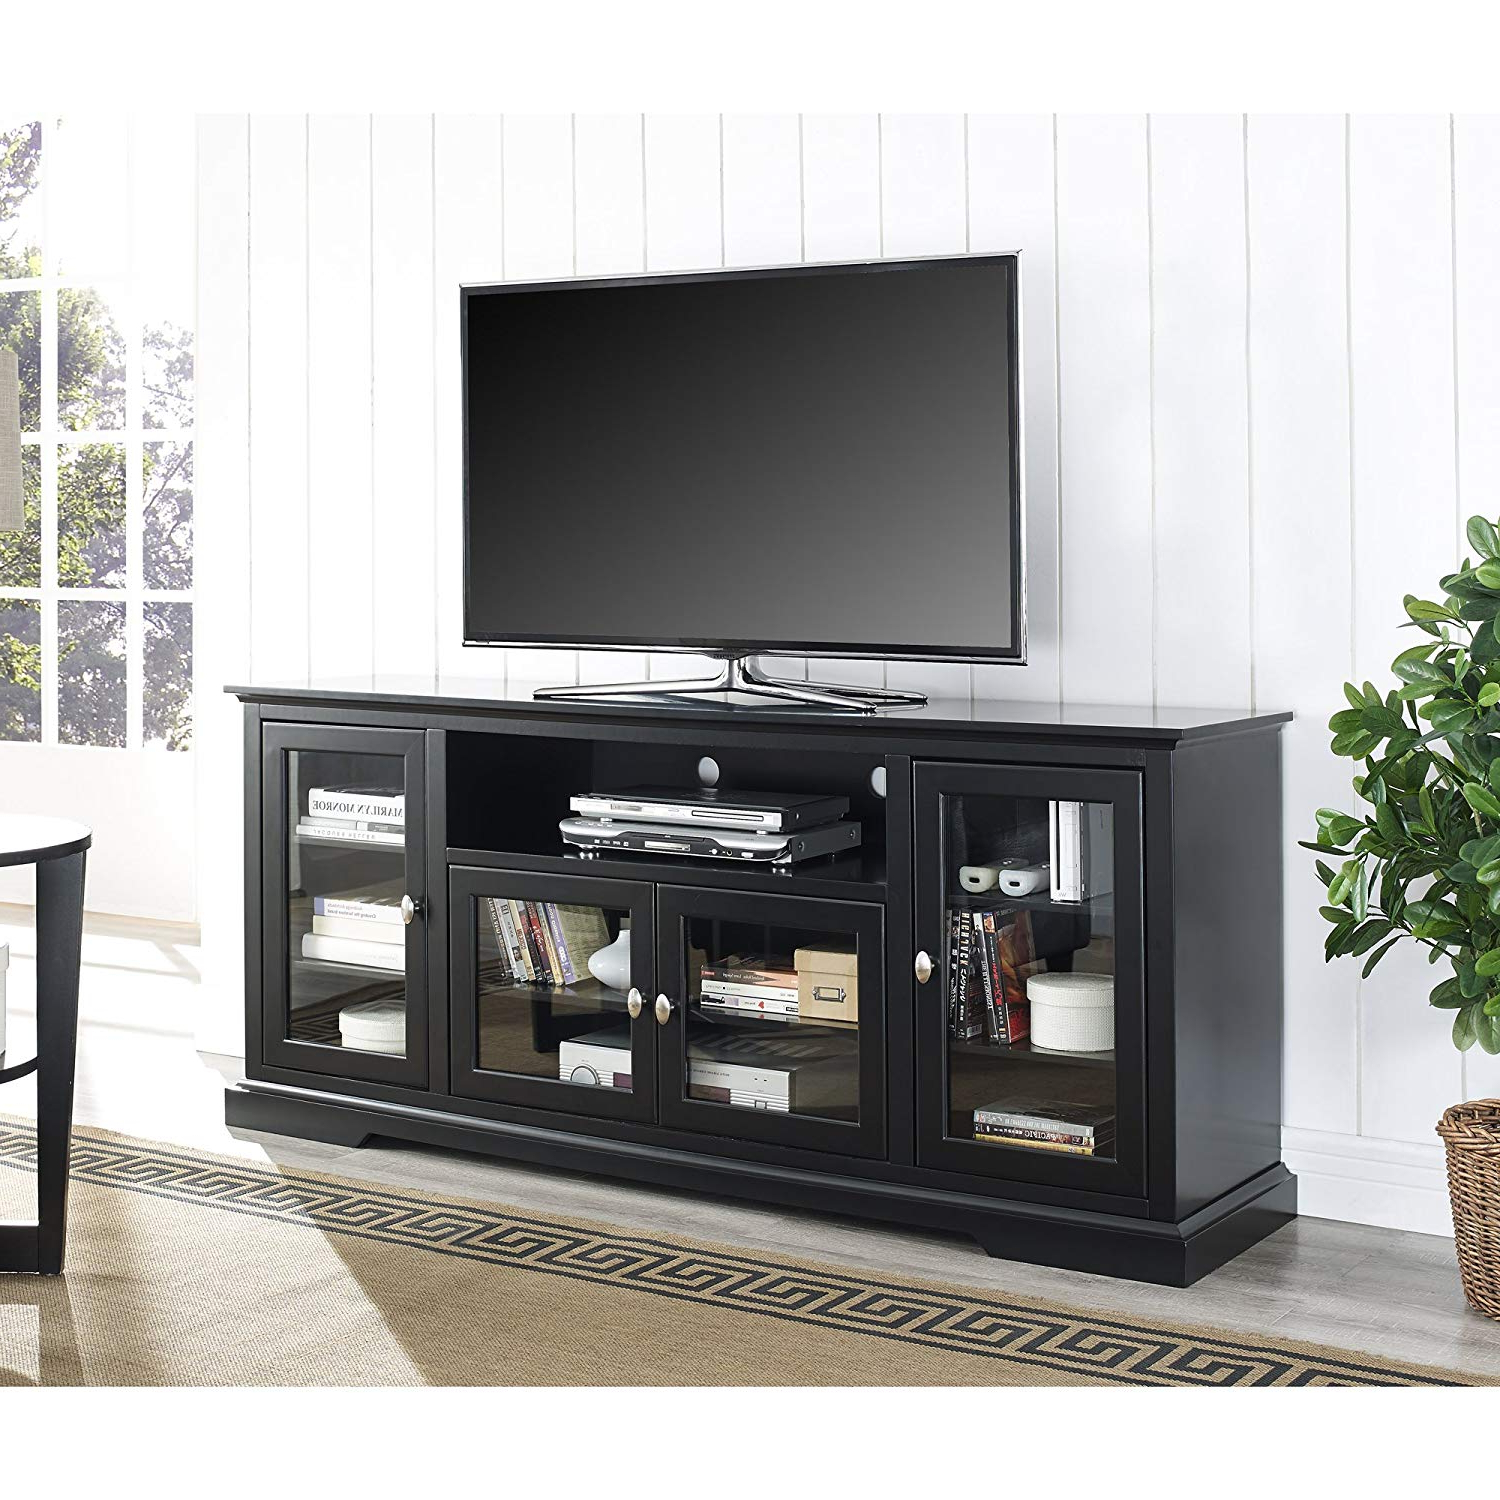 "Amazon: We Furniture 70"" Highboy Style Wood Tv Stand Console Inside 2018 Black Tv Cabinets With Doors (Gallery 4 of 20)"